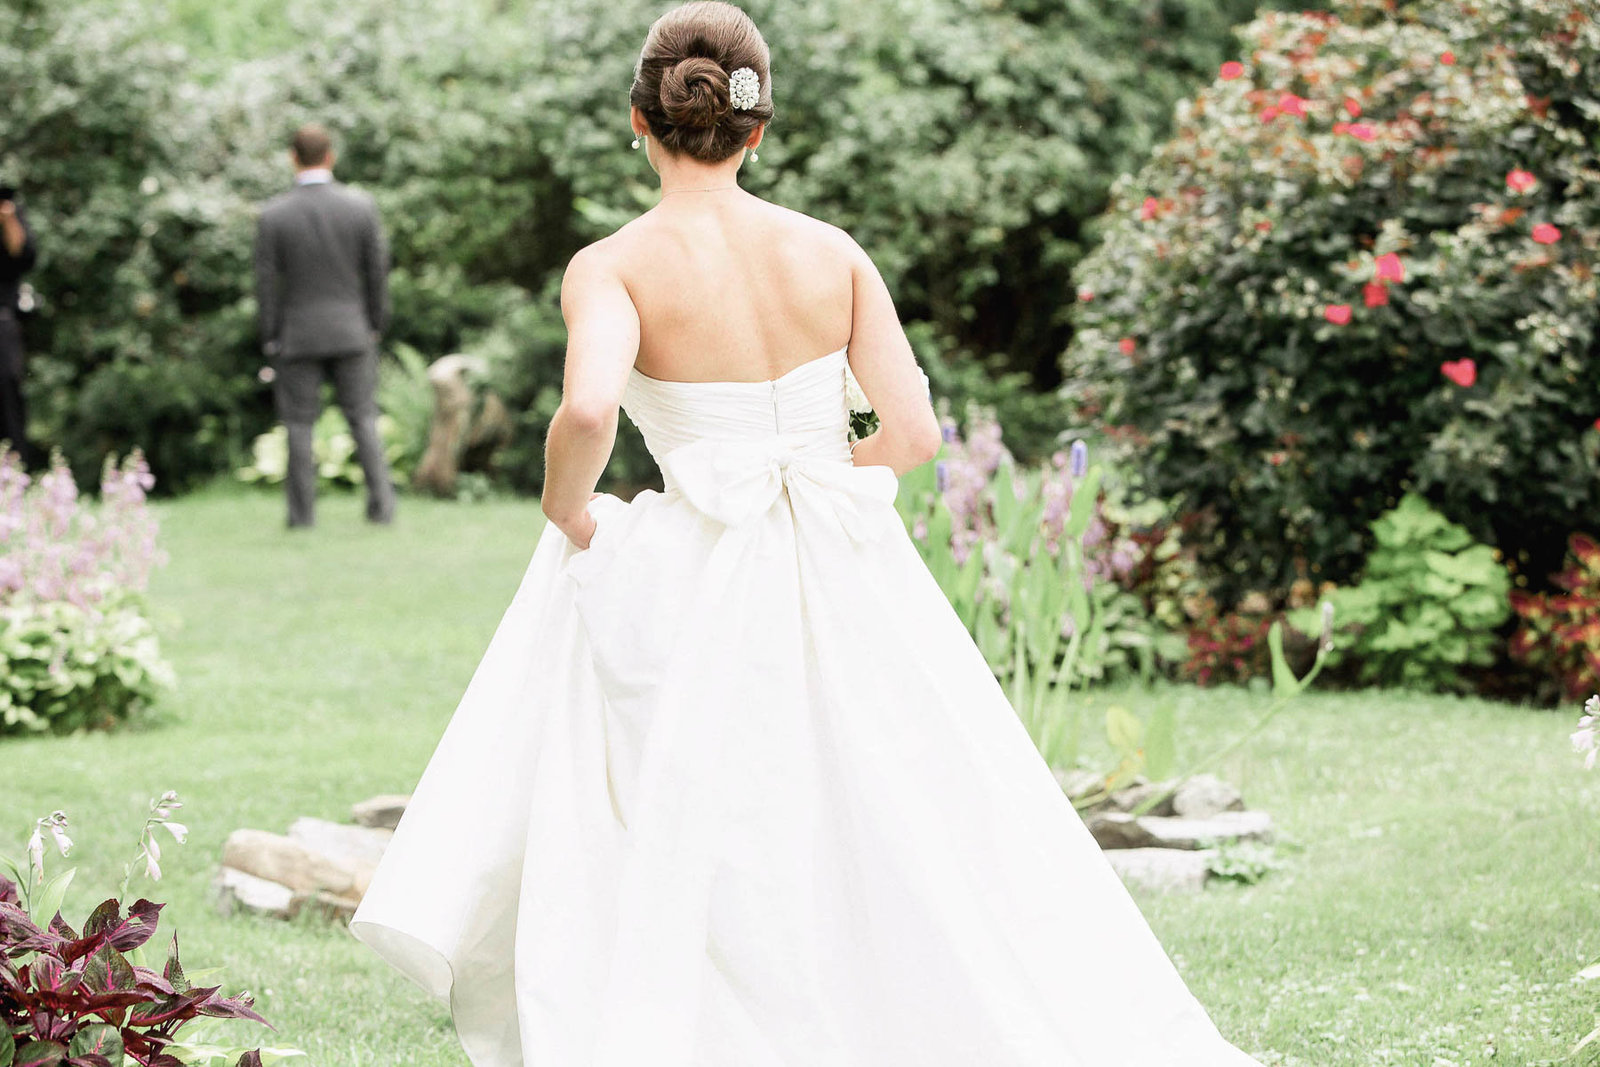 Bride walks to groom in garden during first look, Rockwood Mansion and Carriage House, Wilmington, Delaware. Kate Timbers Photography.